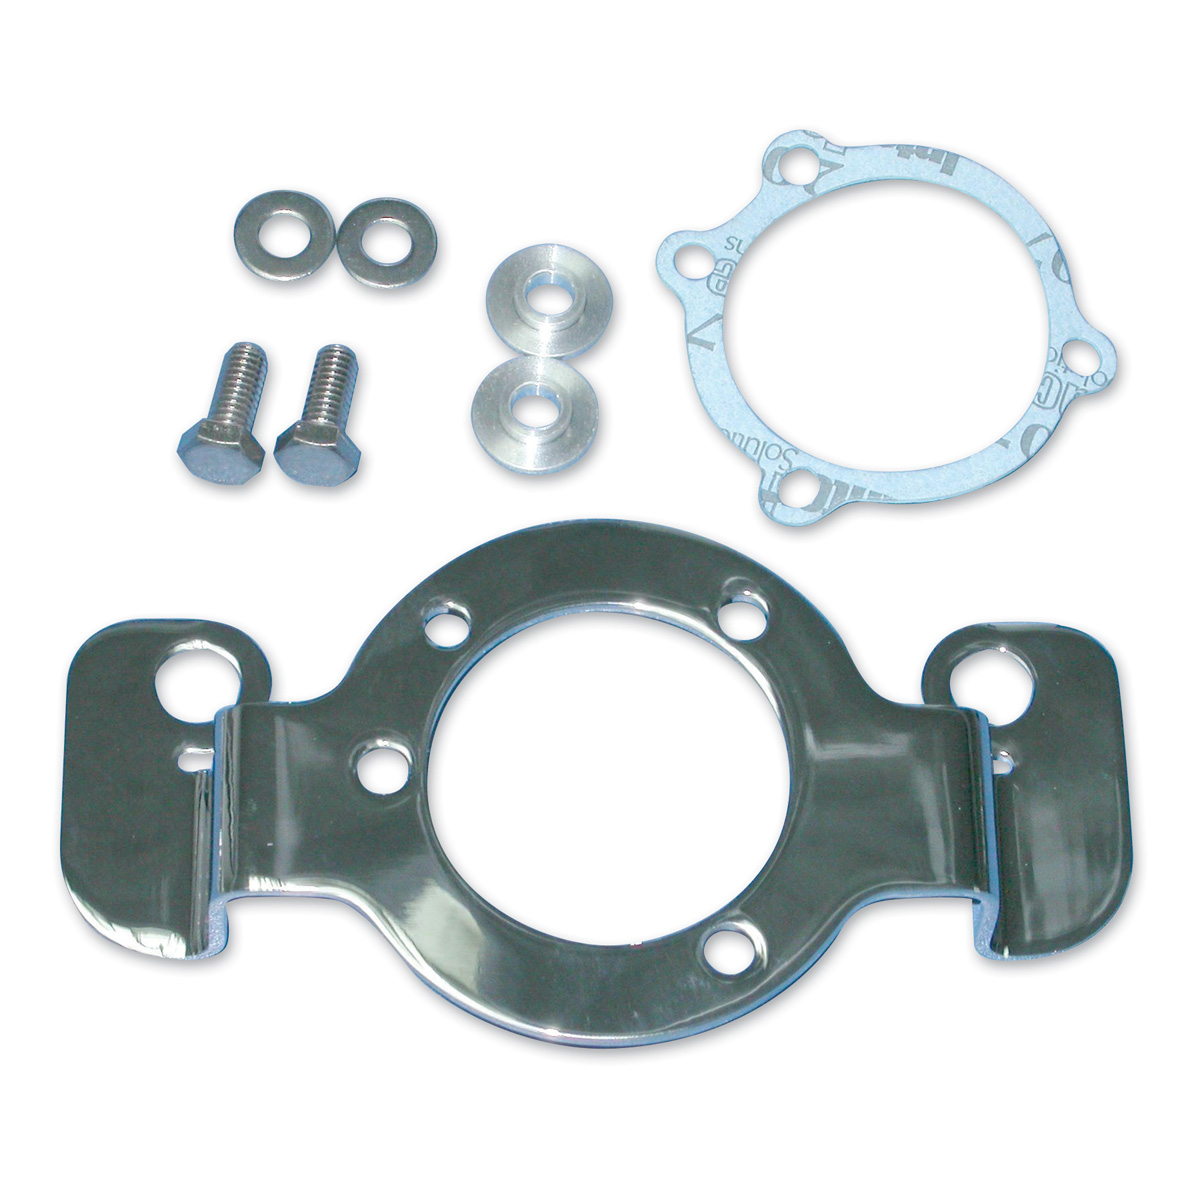 Air Cleaner Bracket for Sportster Models with CV Carb